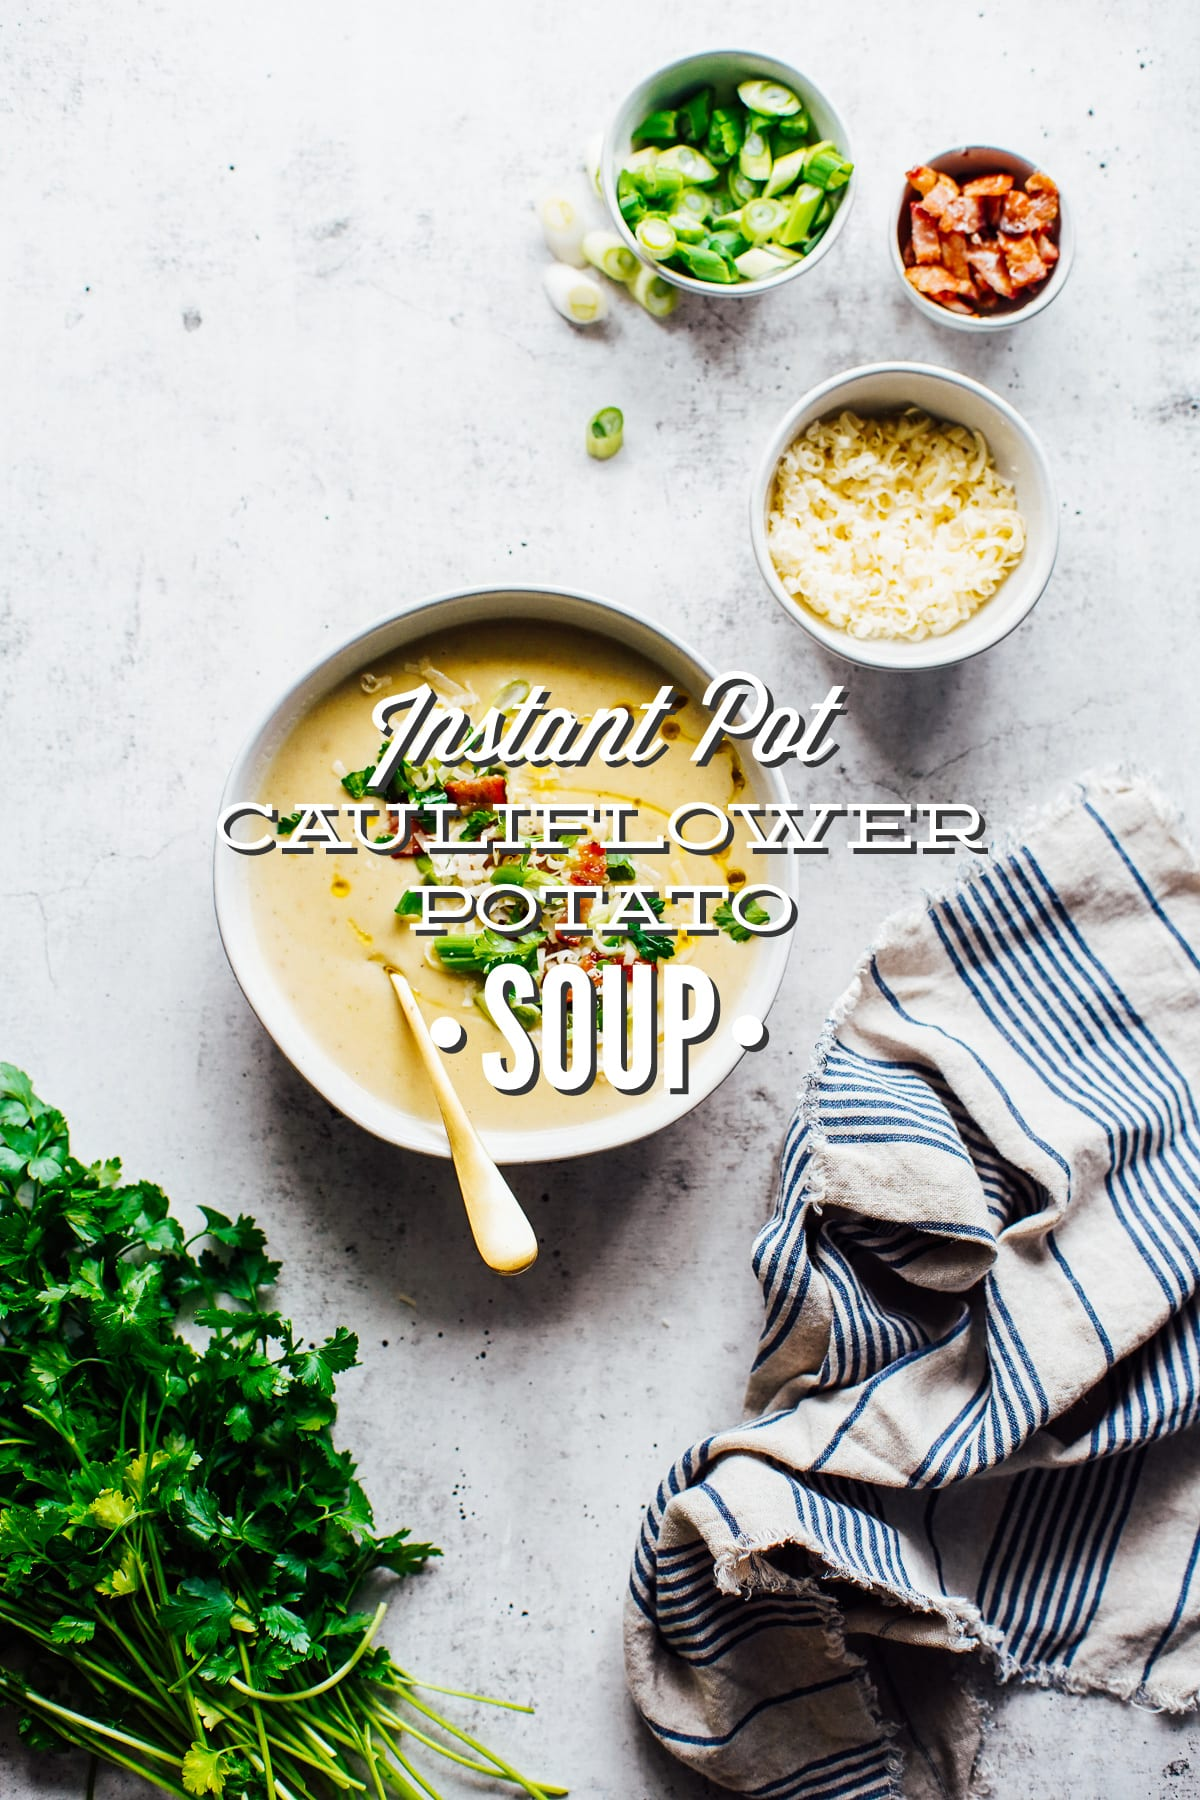 Instant Pot Loaded Cauliflower-Baked Potato Soup (Stove-Top or Pressure Cooker)